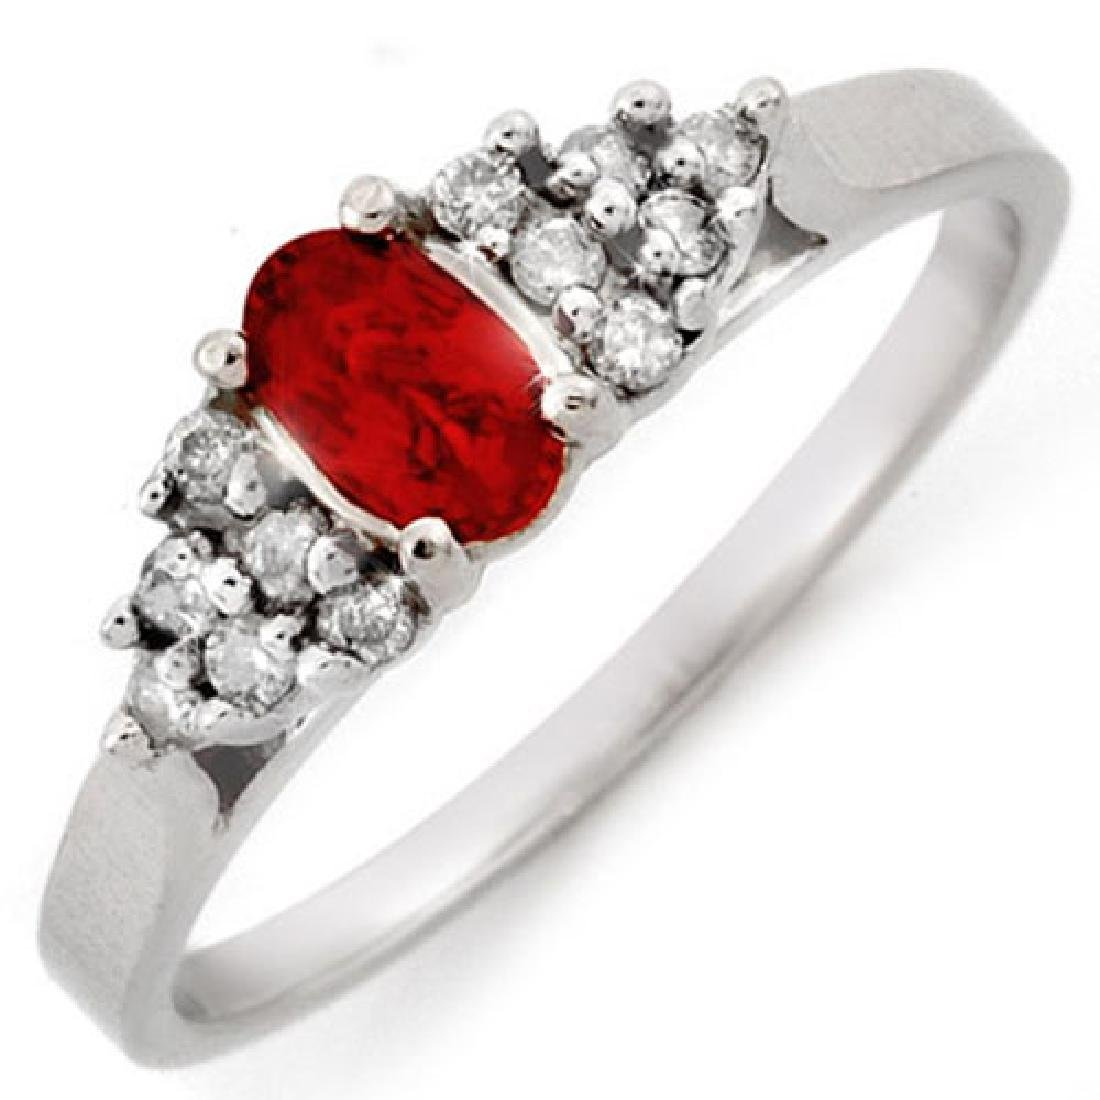 0.74 CTW Red Sapphire & Diamond Ring 10K White Gold